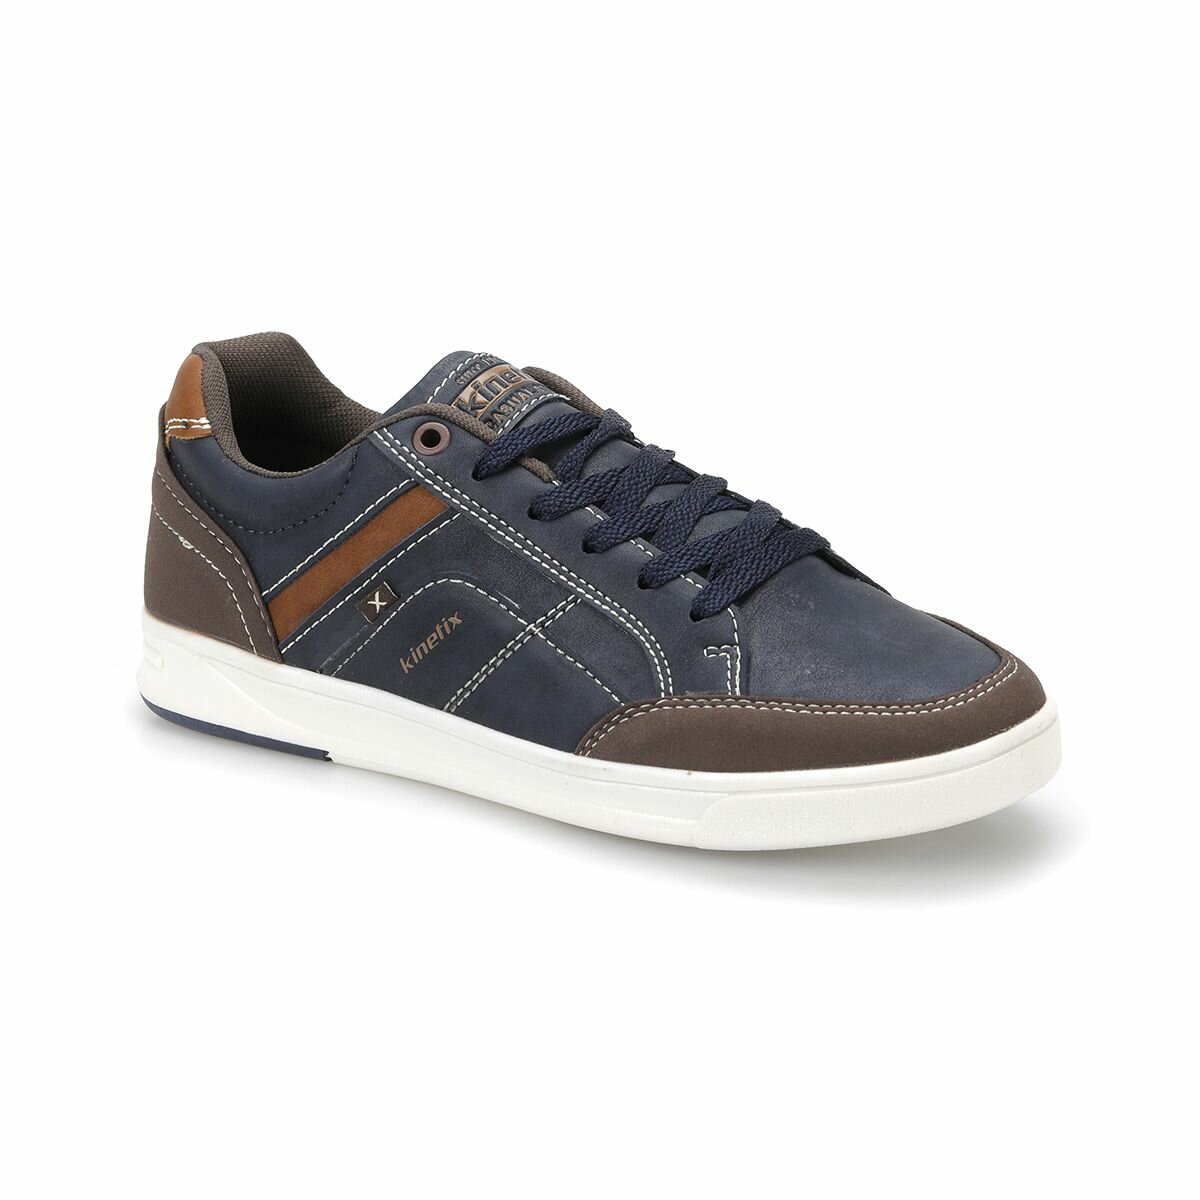 FLO ANDREAS Navy Blue Men Casual Shoes KINETIX